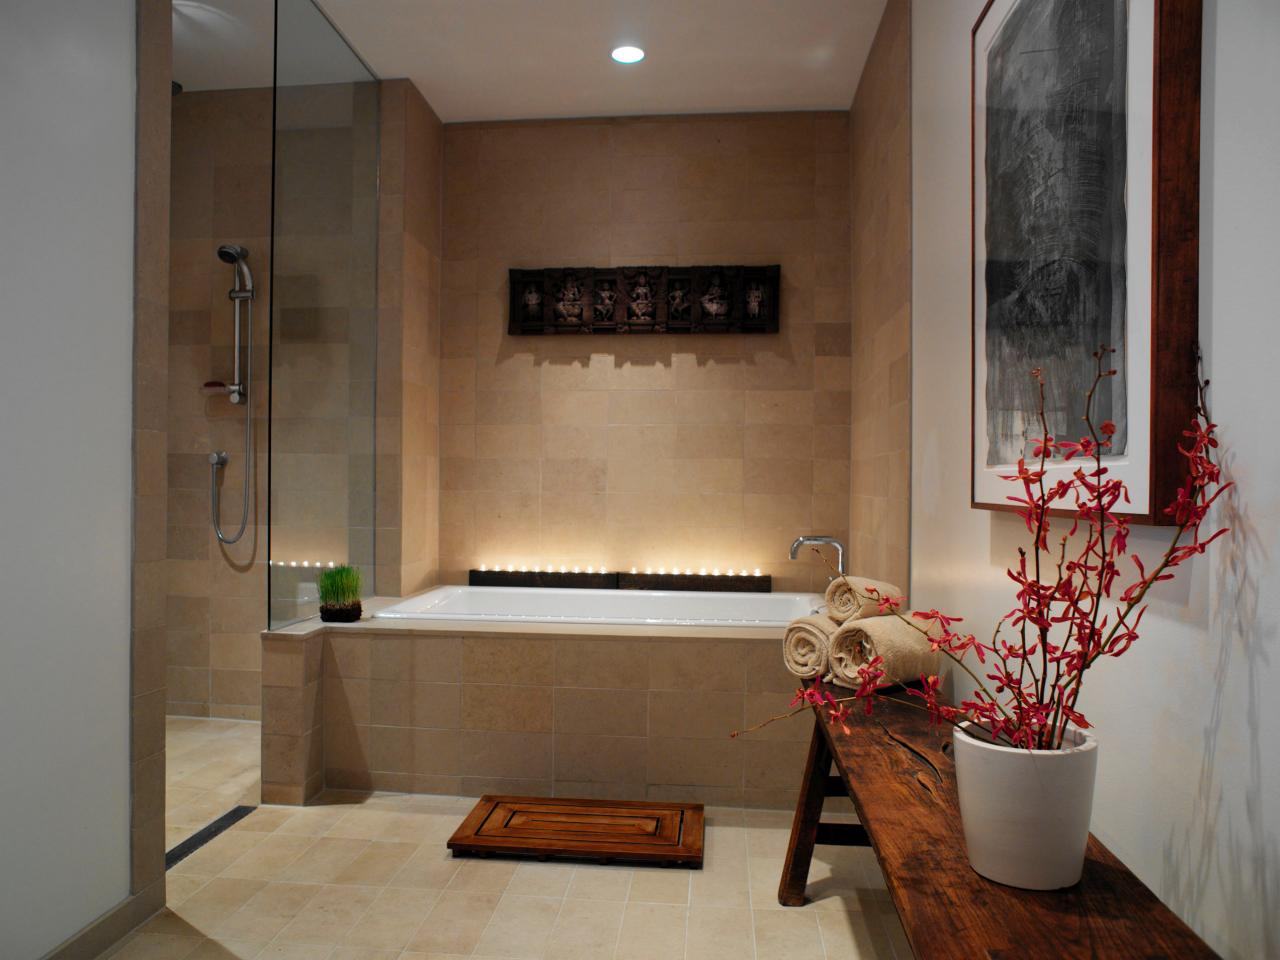 spa bathroom ideas pictures photo - 3